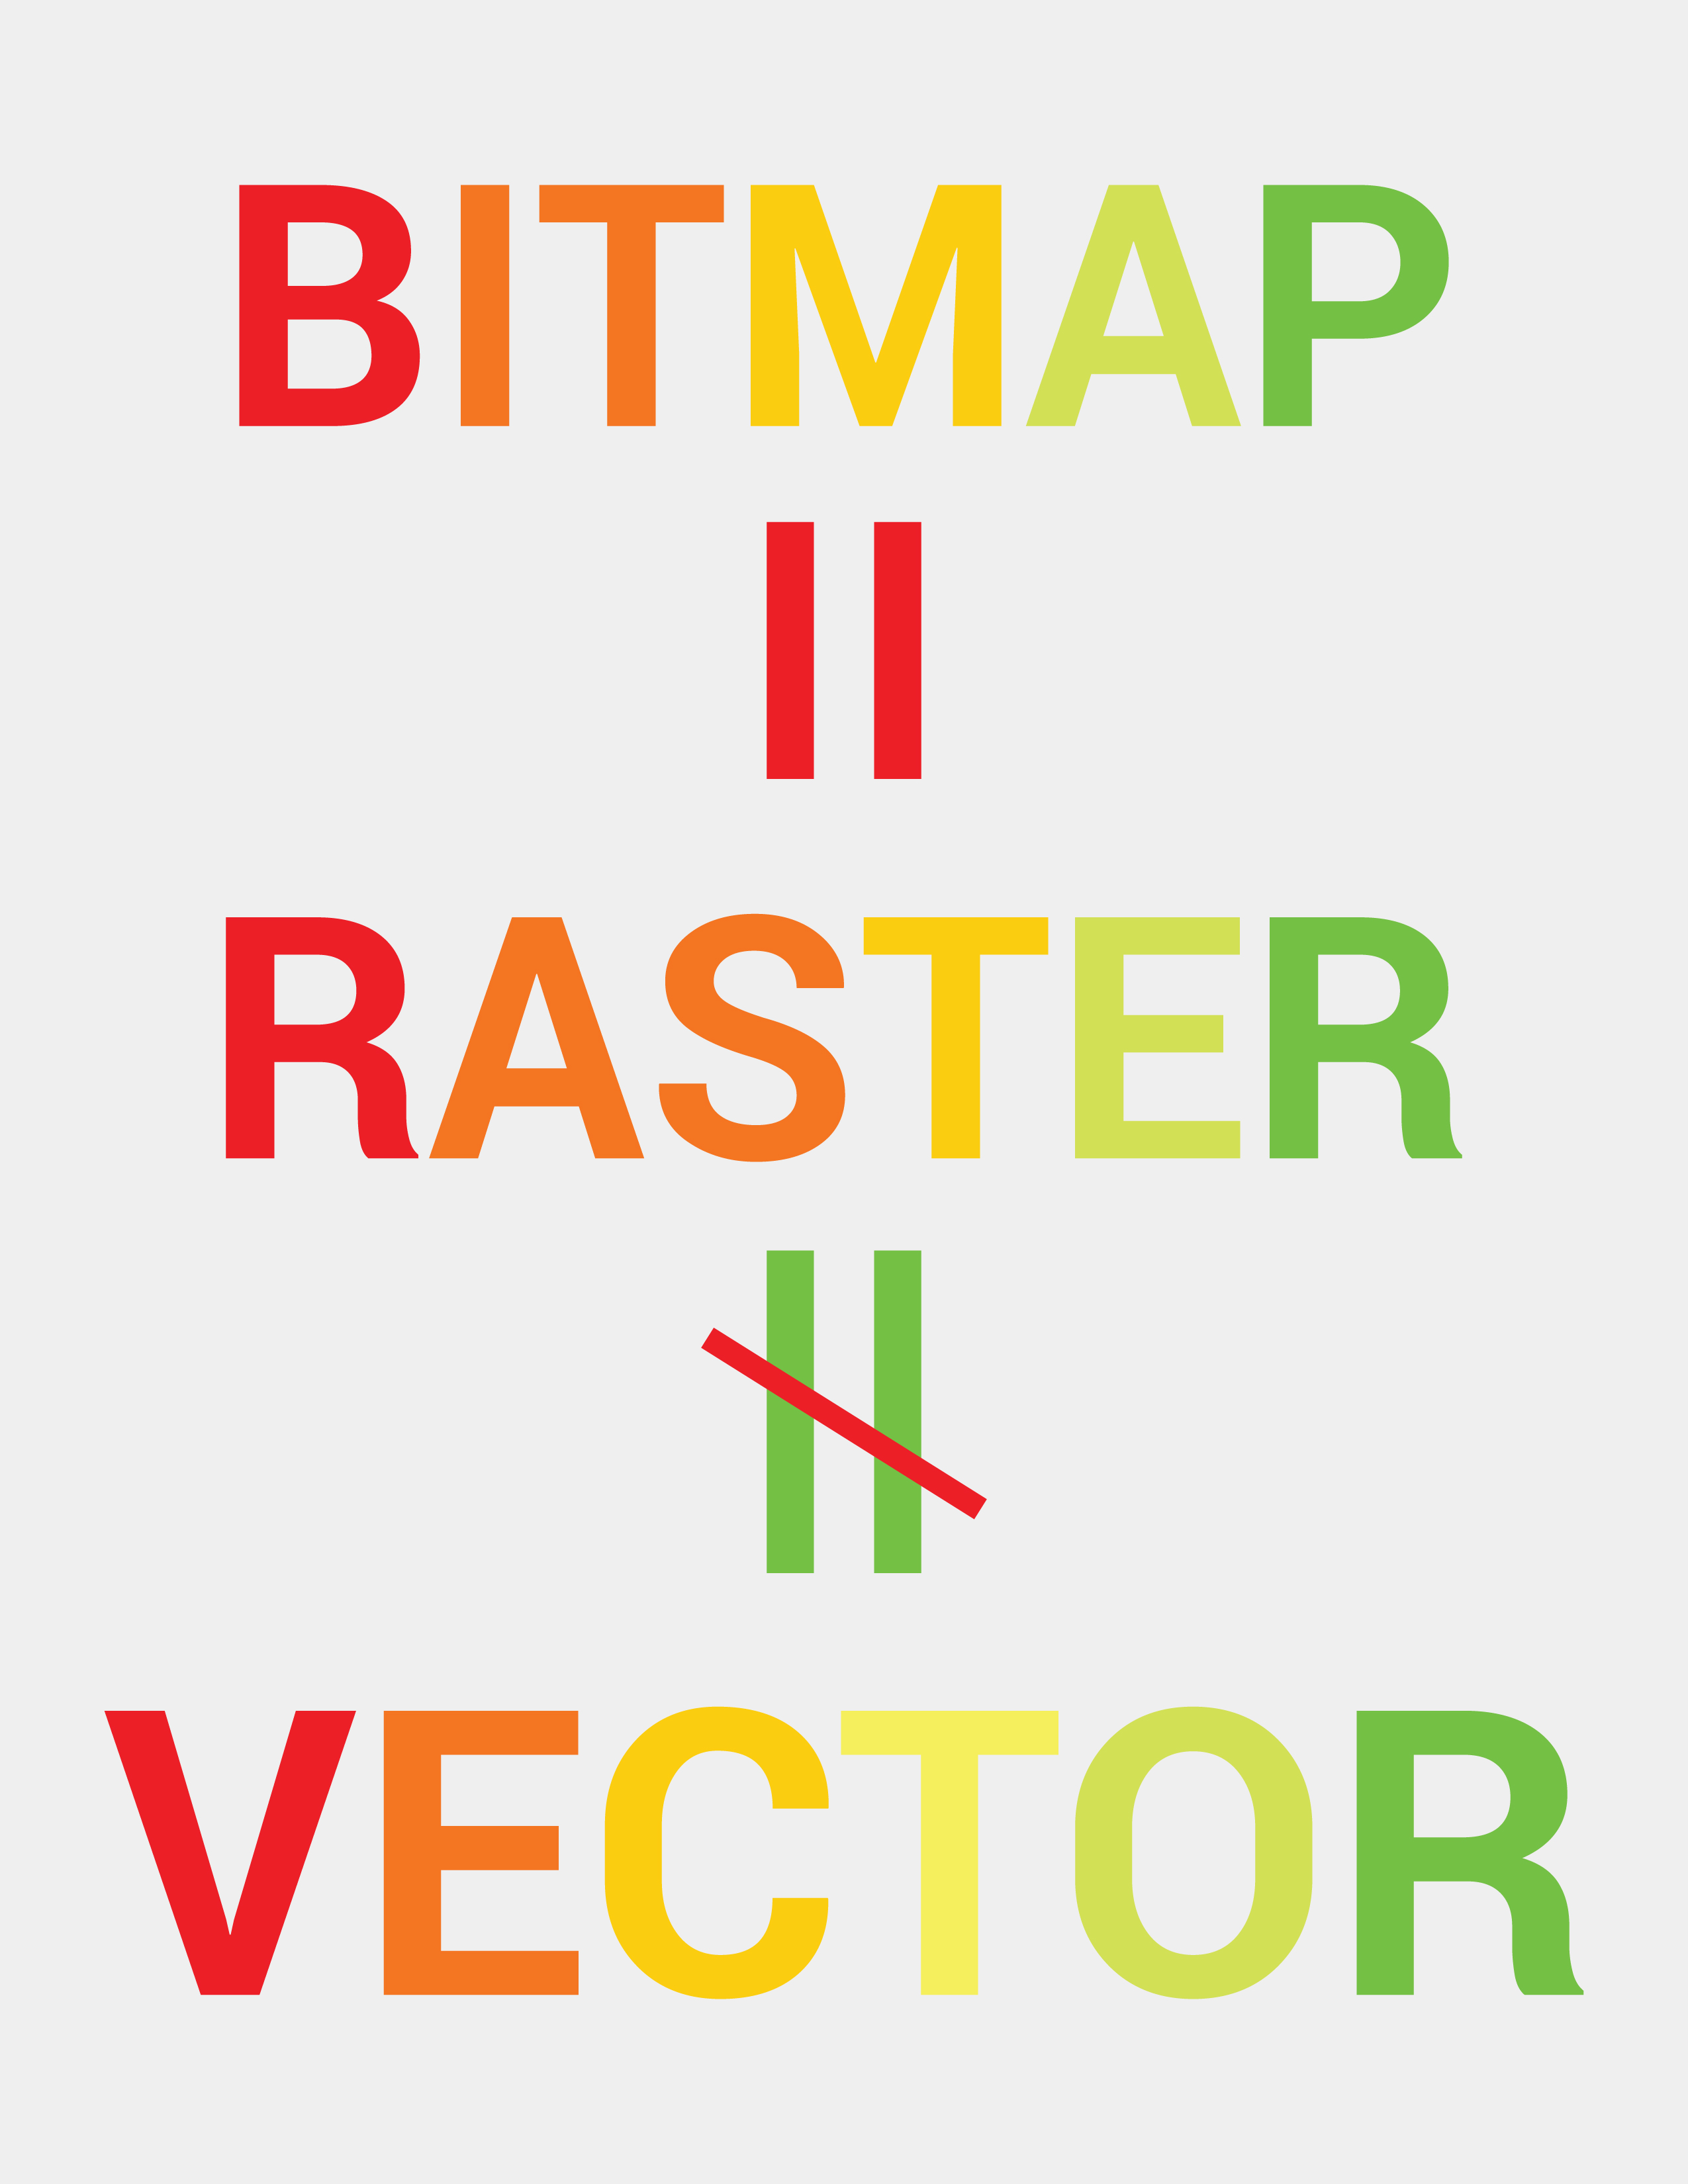 CONVERSION OF BITMAP IMAGES TO VECTOR